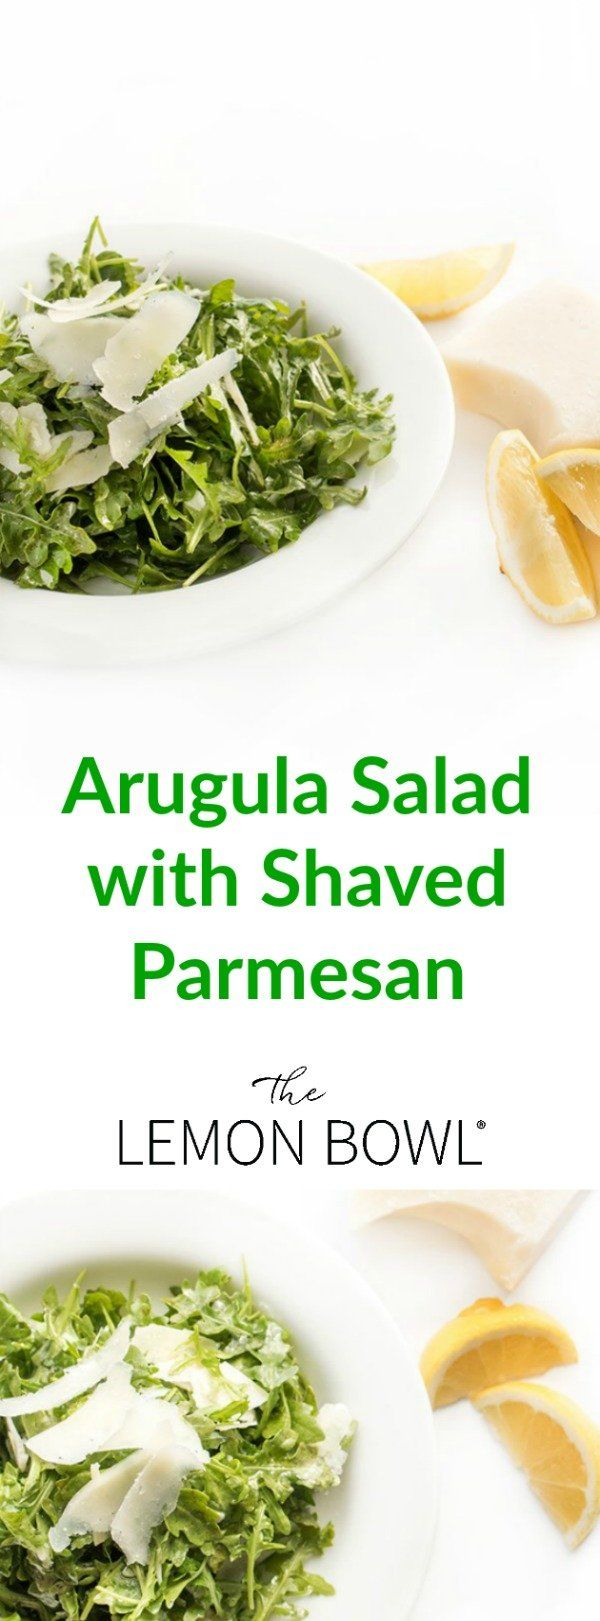 This bright and refreshing arugula salad recipe is made with just five simple ingredients including lemon juice, olive oil and shaved parmesan.